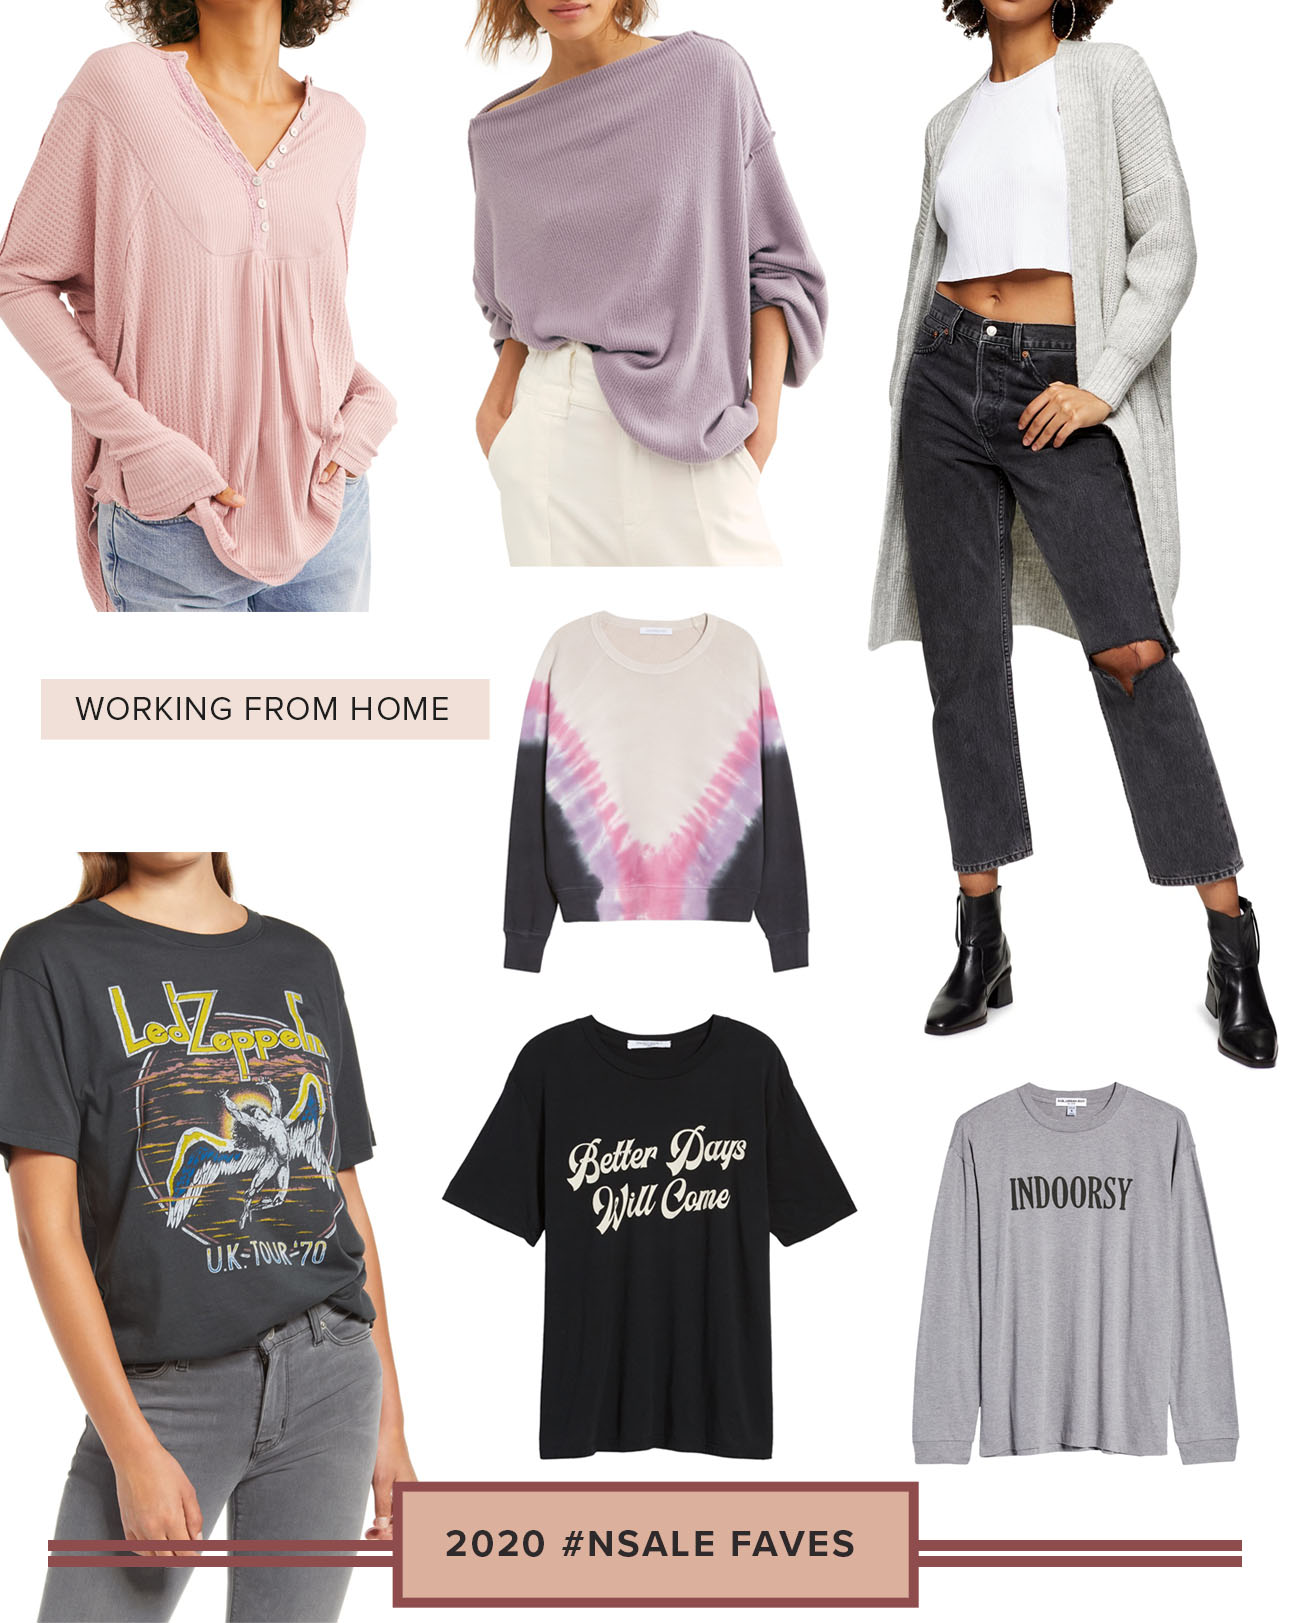 2020 Nordstrom Anniversary Sale Favorites for Working From Home